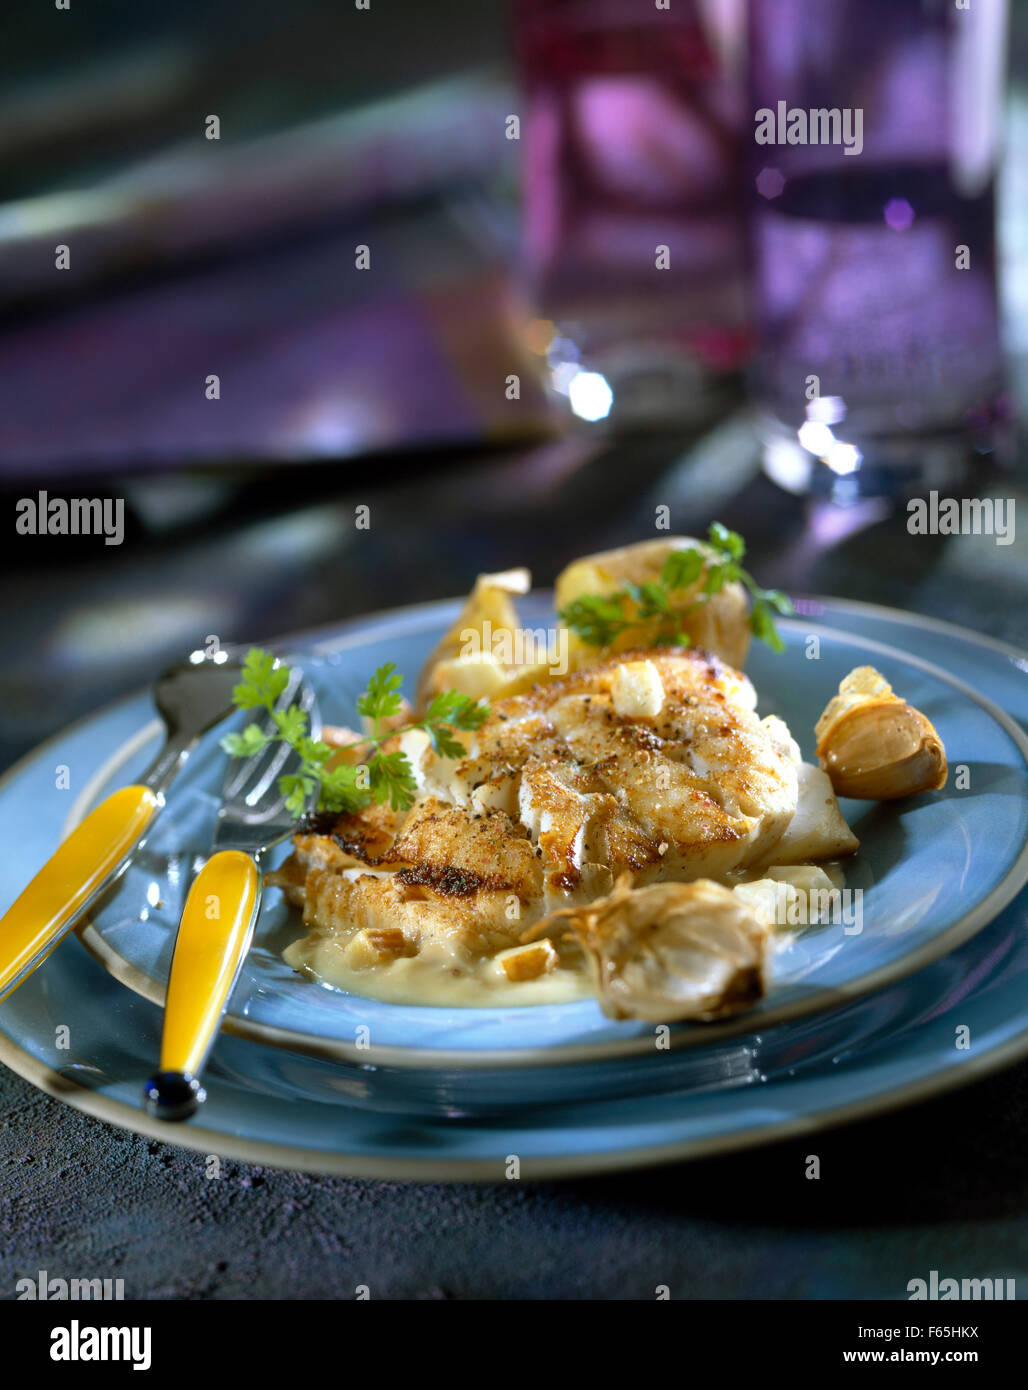 Salt-cod with Maroilles and white beer Stock Photo